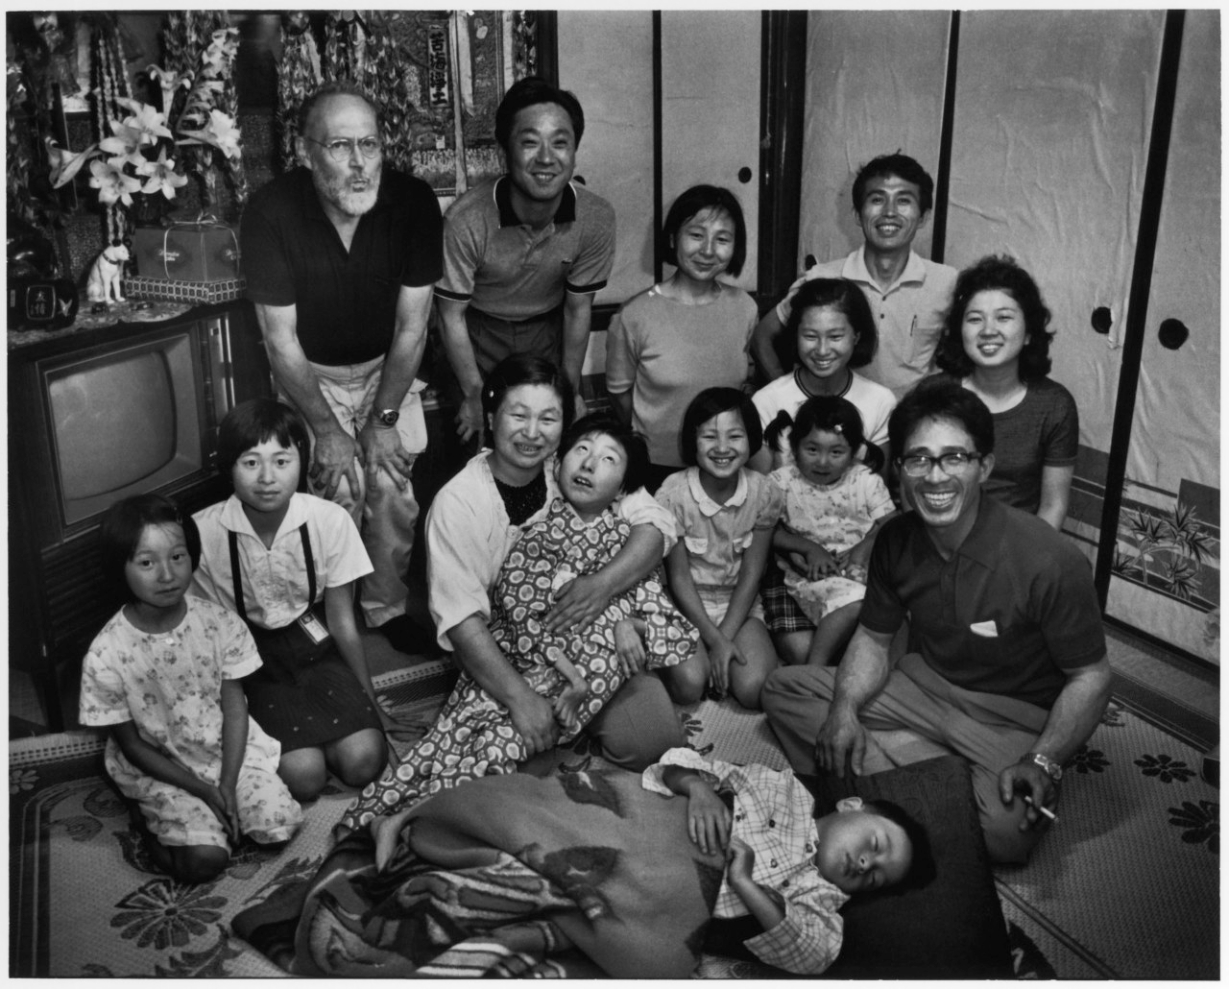 Tomoko with her family, supporters, Gene, and Asahi Camera editor, taken at Tomoko's home in Minamata on her sixteenth birthday. Photo by Aileen M. Smith. June 13, 1972.